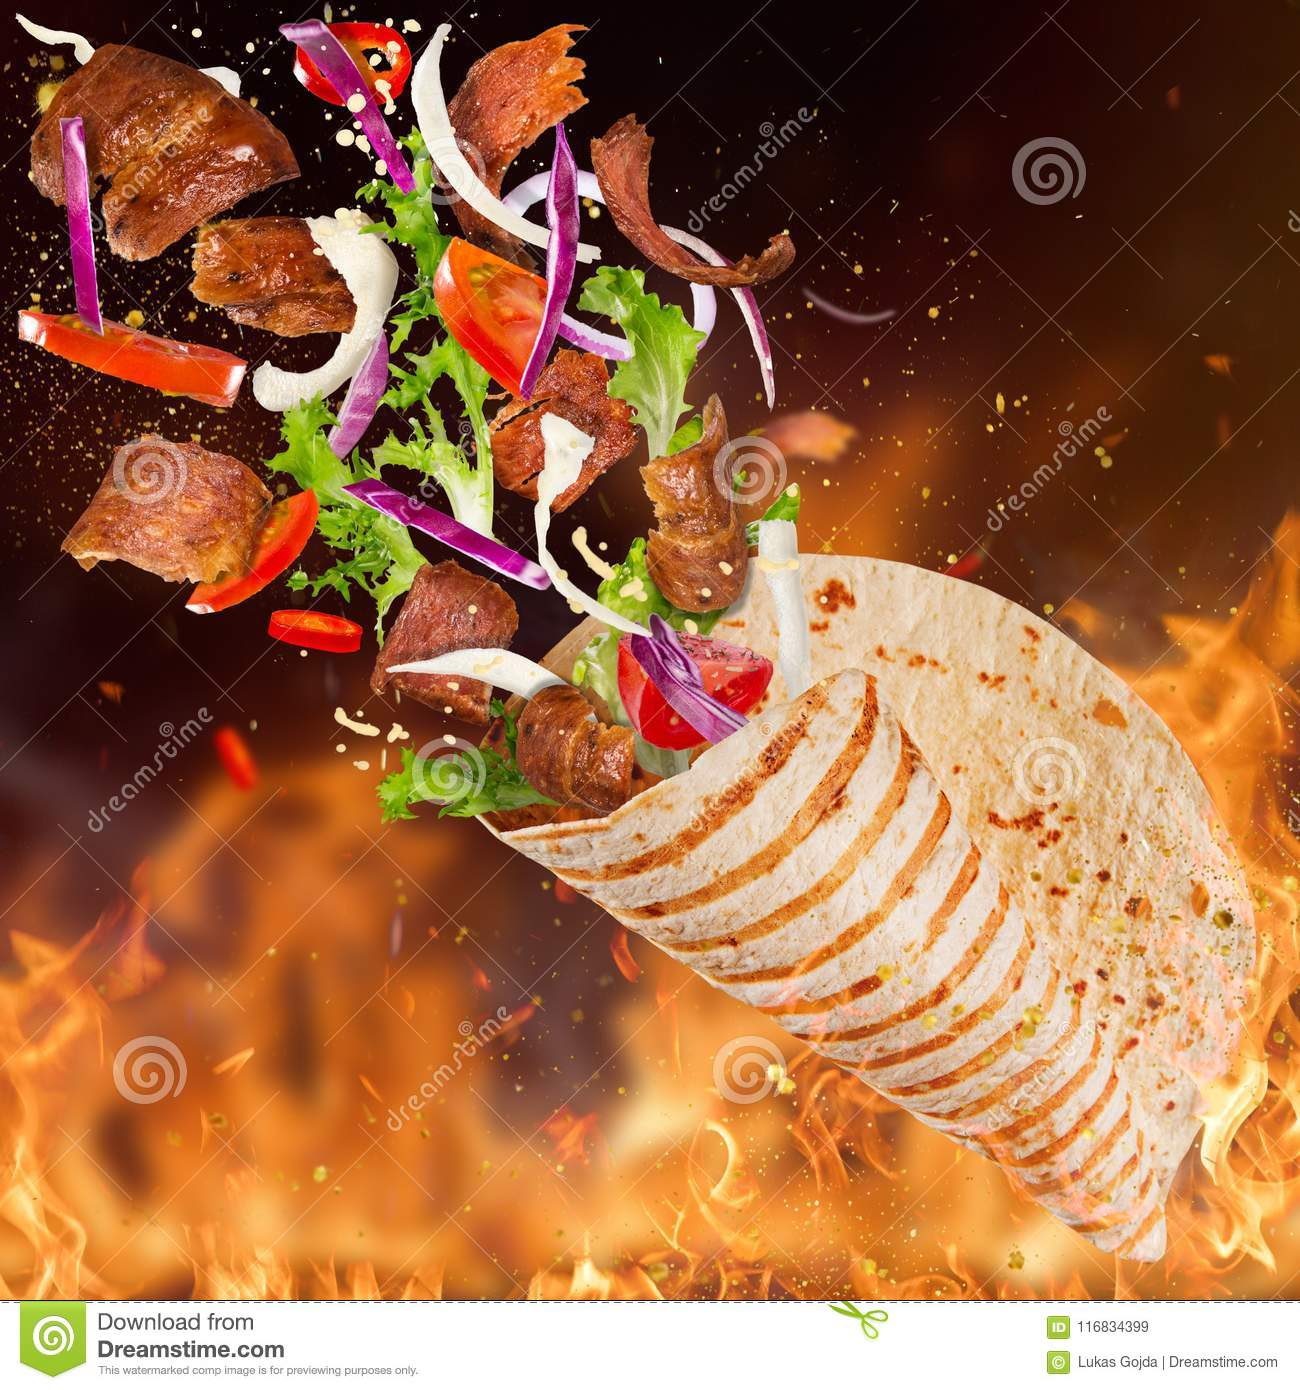 Turkish Kebab Yufka With Flying Ingredients And Flames Stock Image Image Of Food Ingredients 116834399